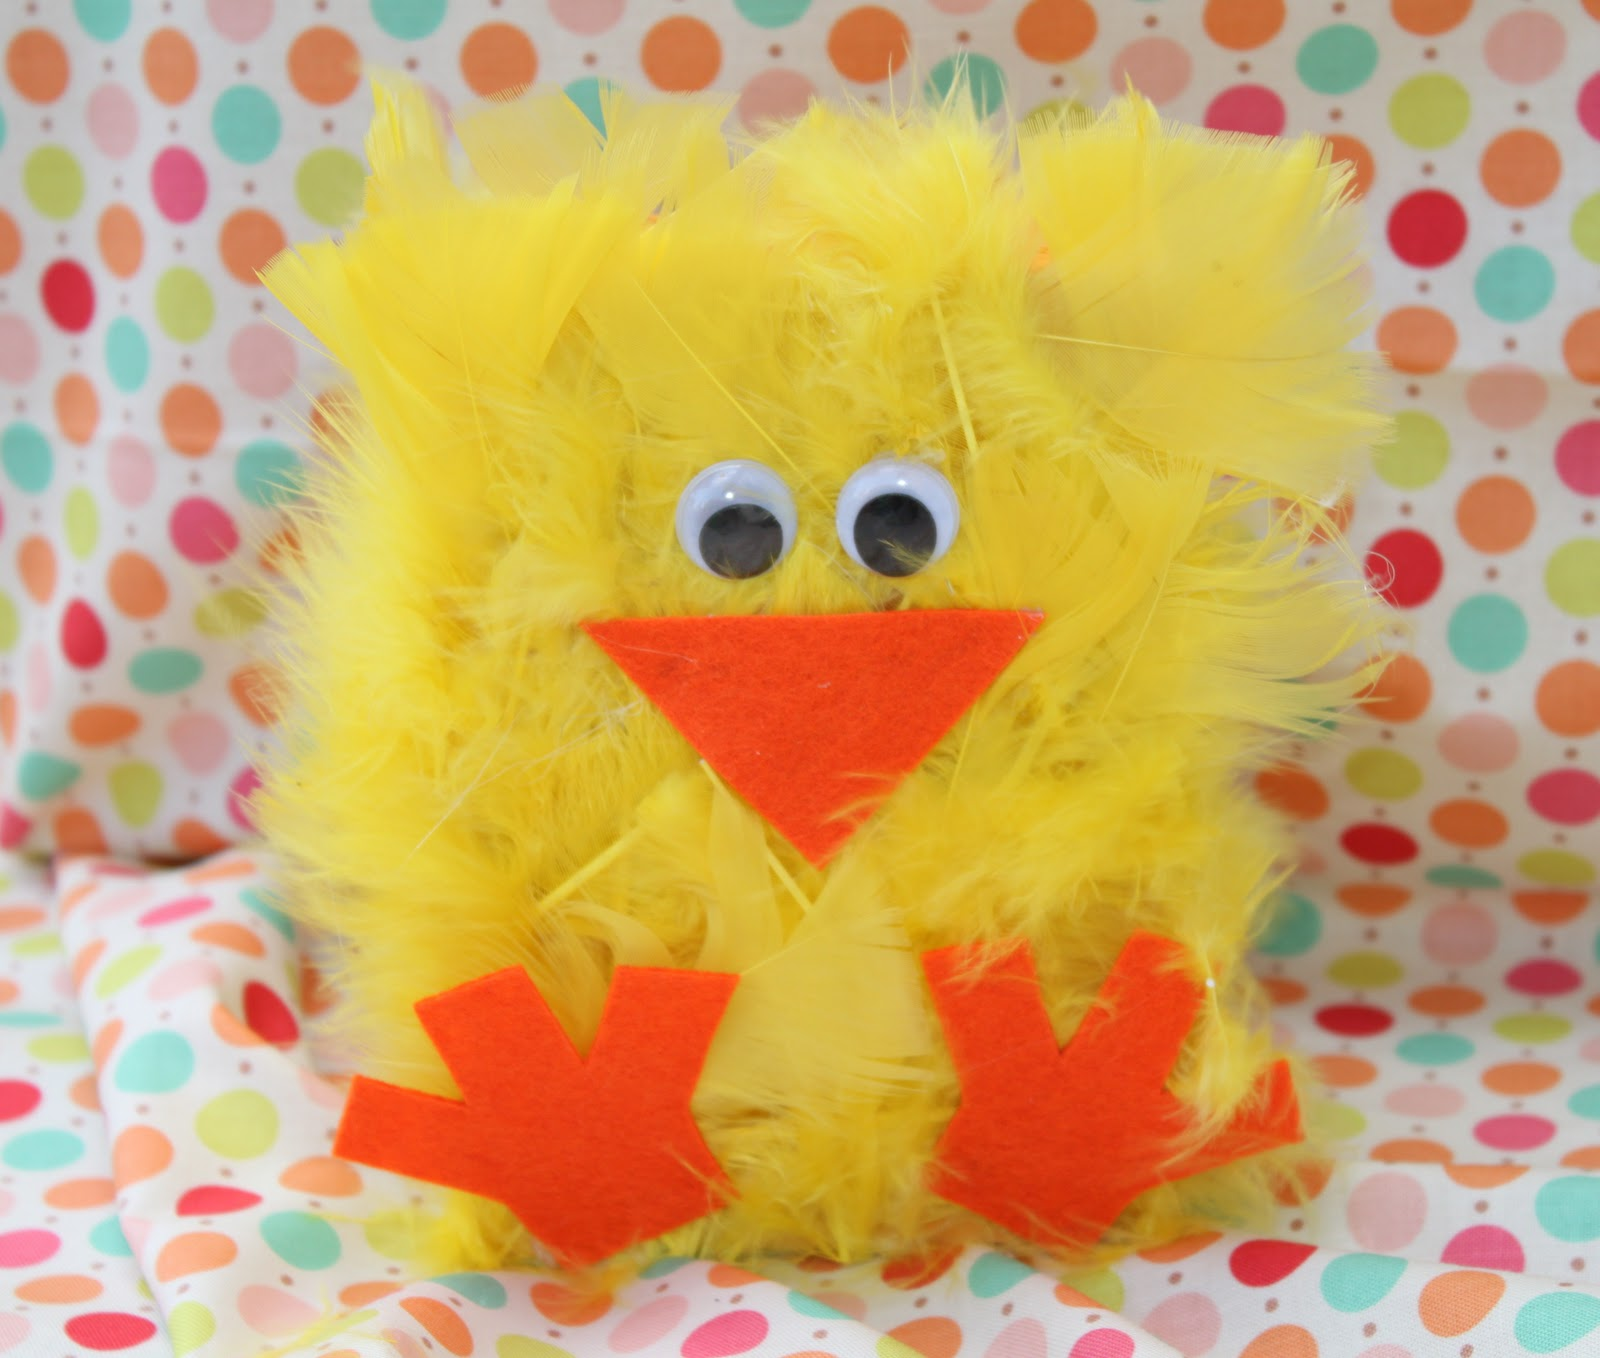 Spring Chick Lamb Bunny 2x4 S Giggles Galore